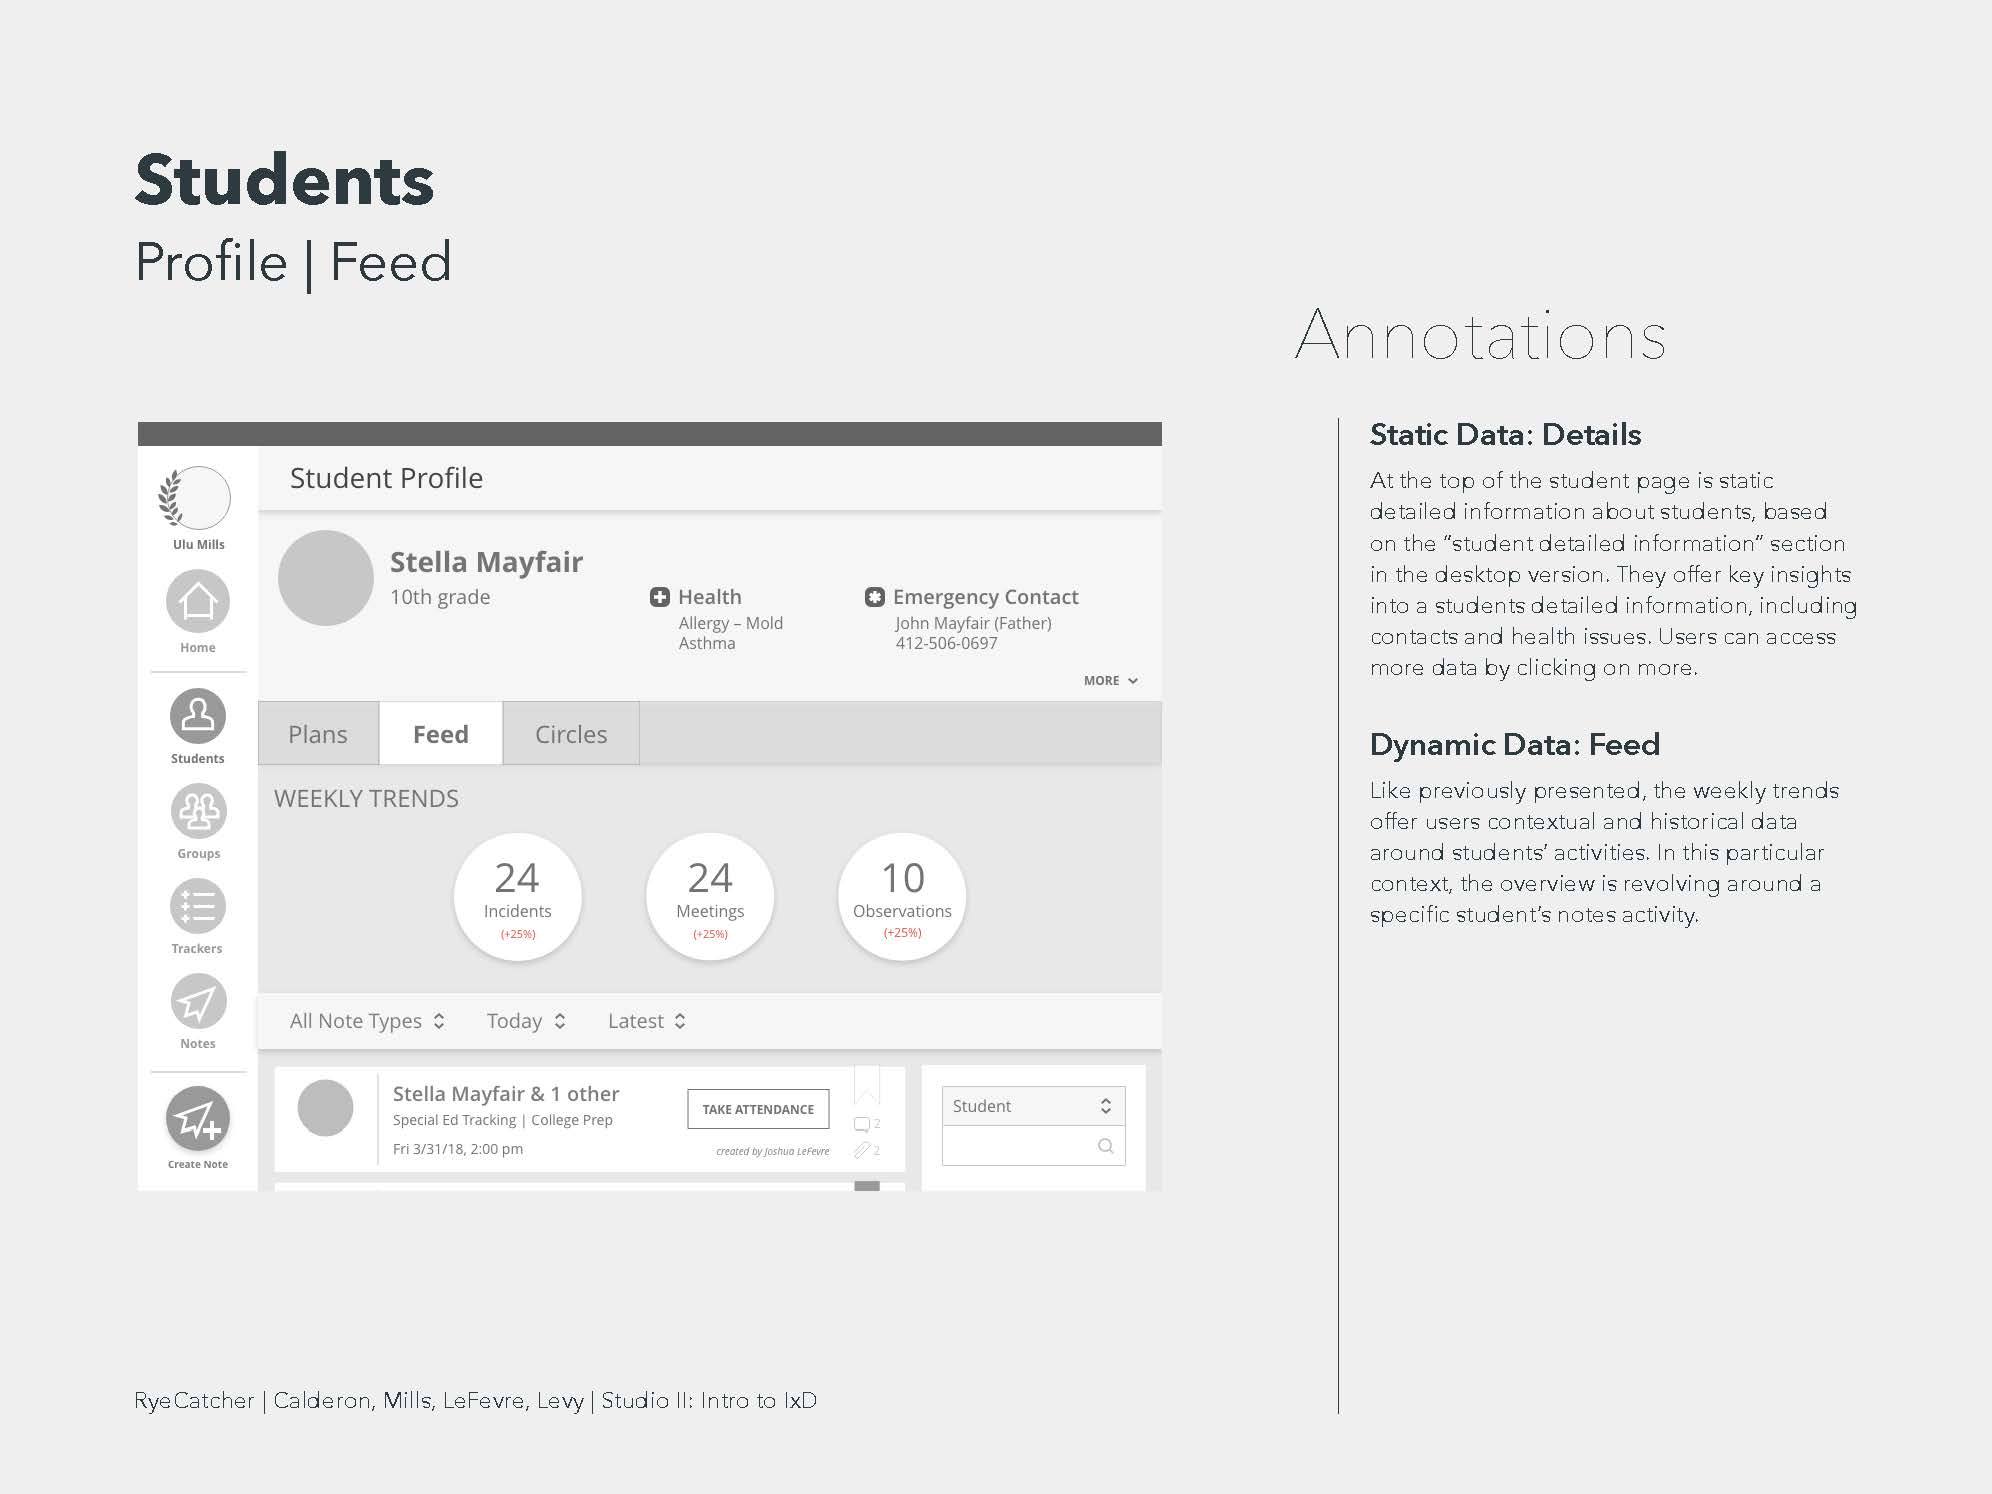 Student feed annotated